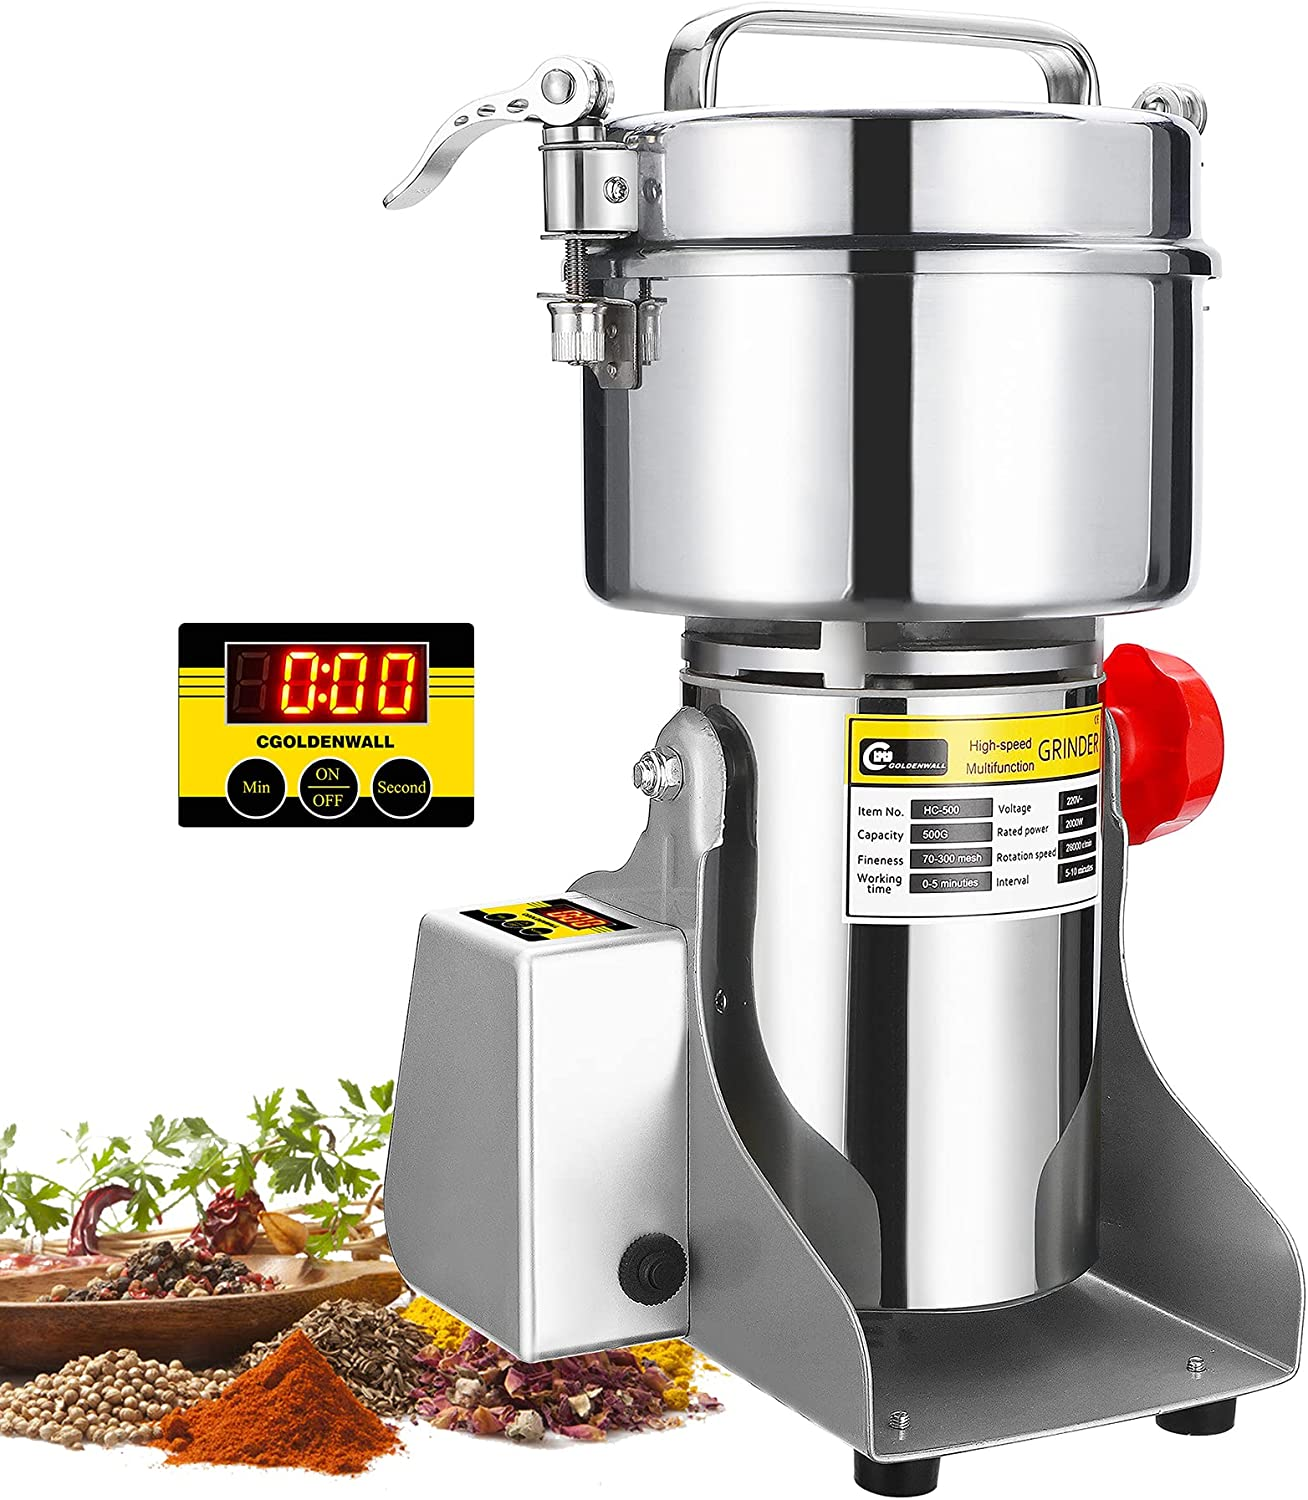 CGOLDENWALL Genuine Free Shipping LED Display Grain Super Special SALE held Grinder 500g Electric High-sp Mill